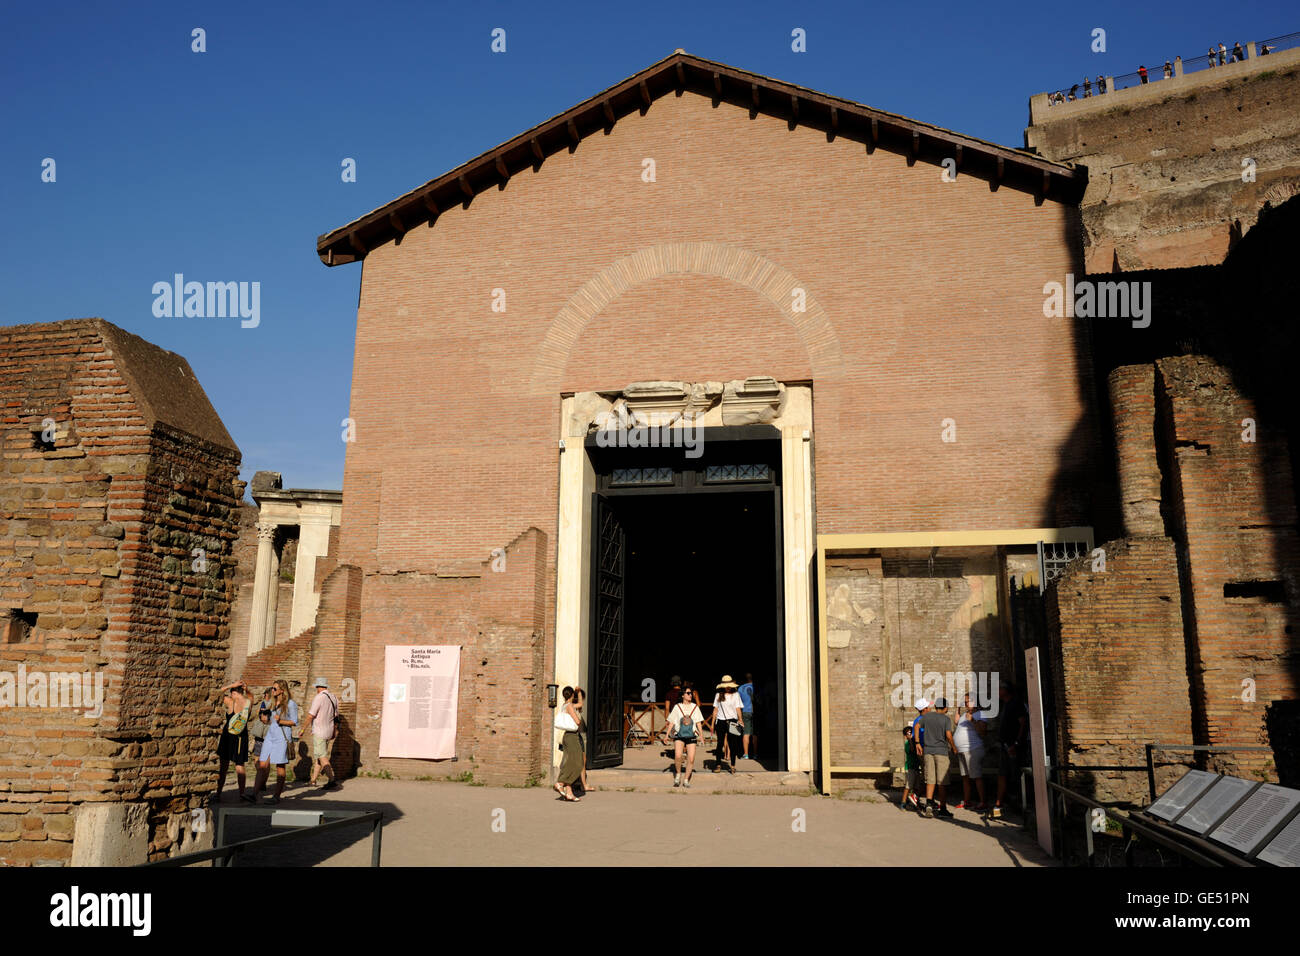 Oratory of the Forty Martyrs, Roman Forum, Rome, Italy - Stock Image